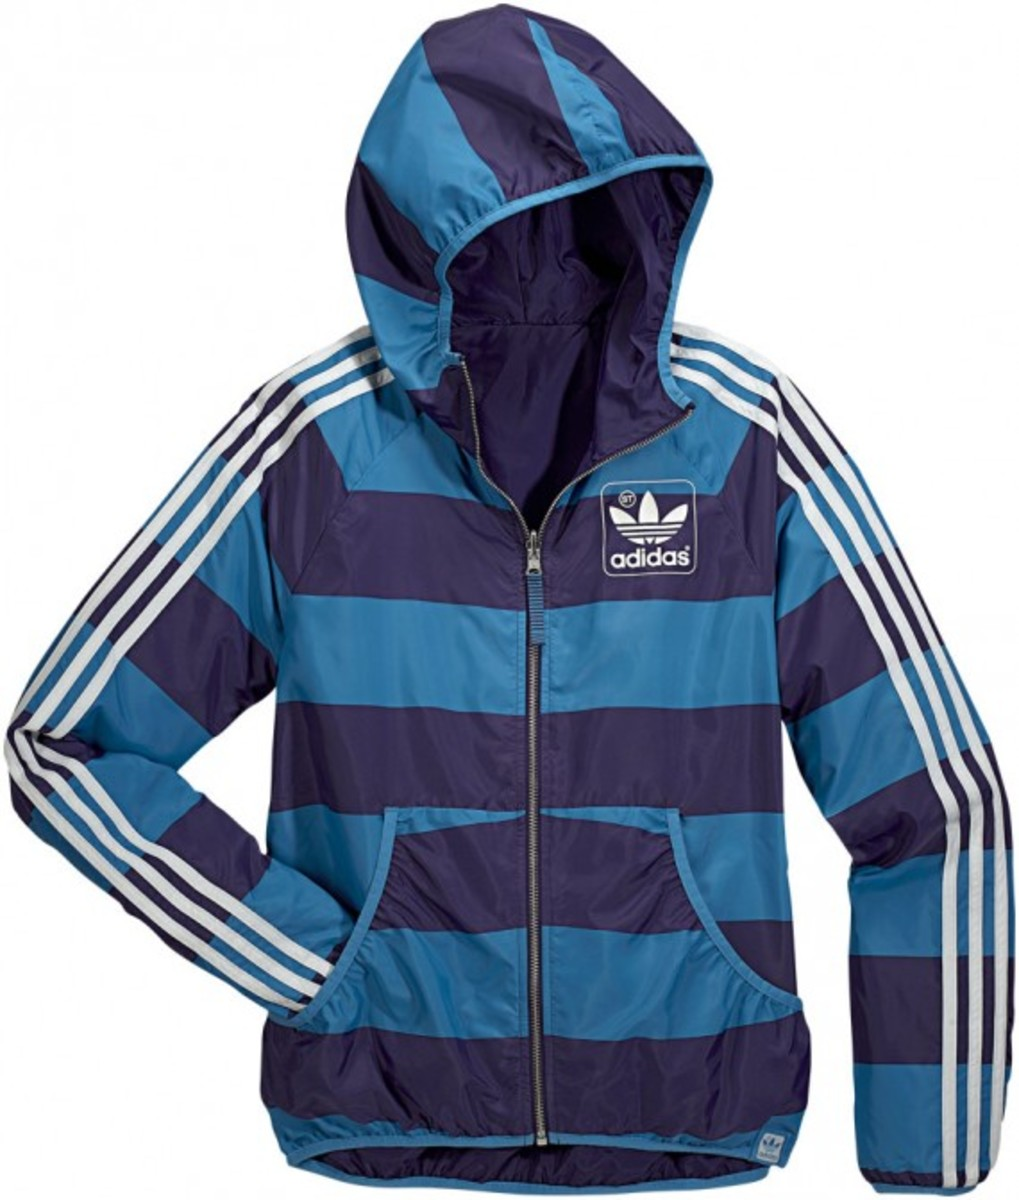 adidas-originals-st-collection-womens-fall-winter-2011-06